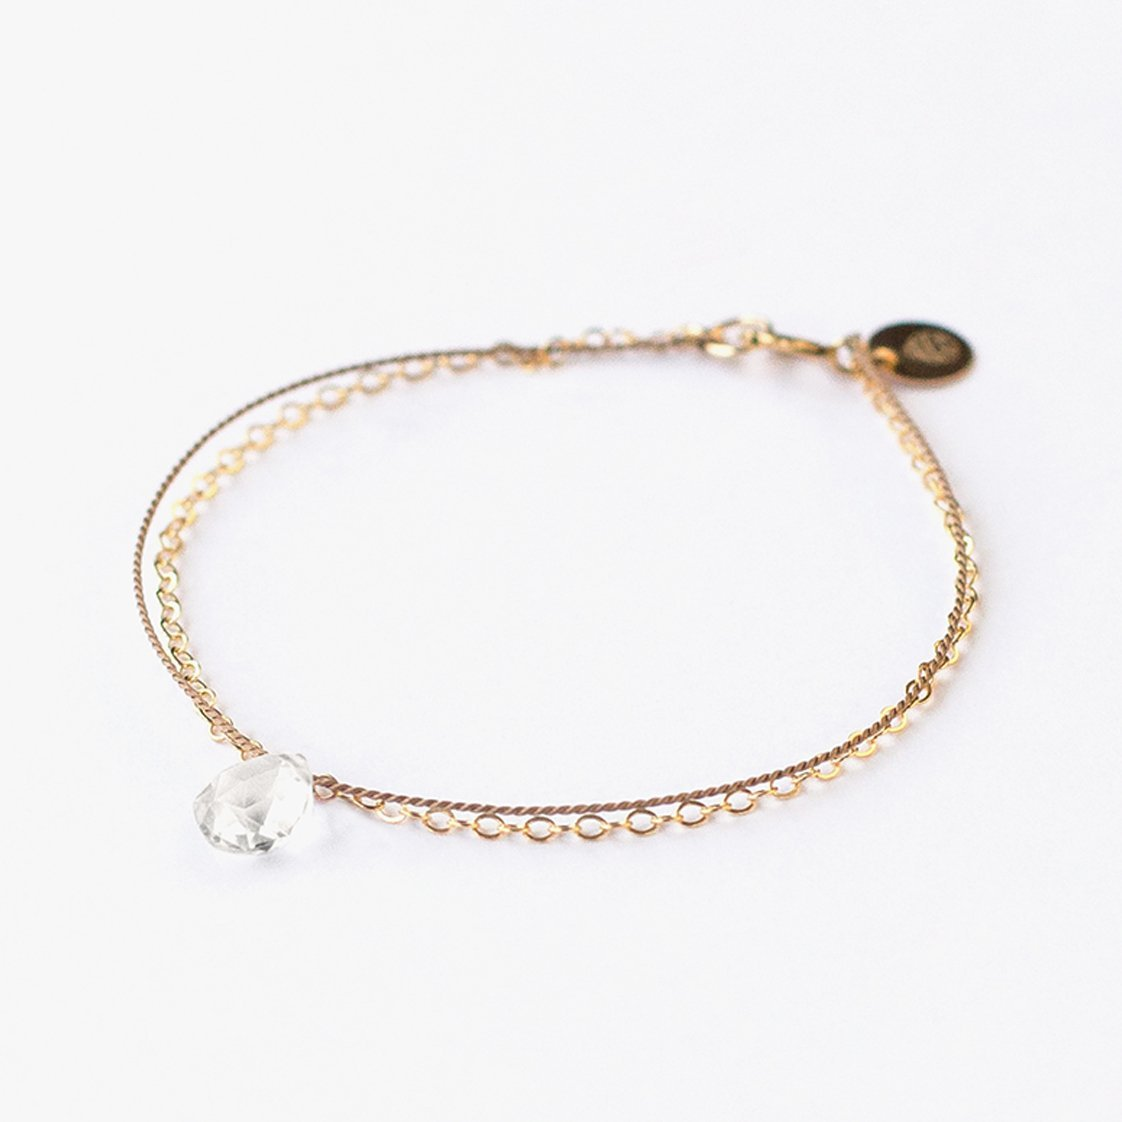 Wanderlust Life Ethically Handmade jewellery made in the UK. Minimalist gold and fine cord jewellery. april birthstone, gold & silk clear quartz bracelet